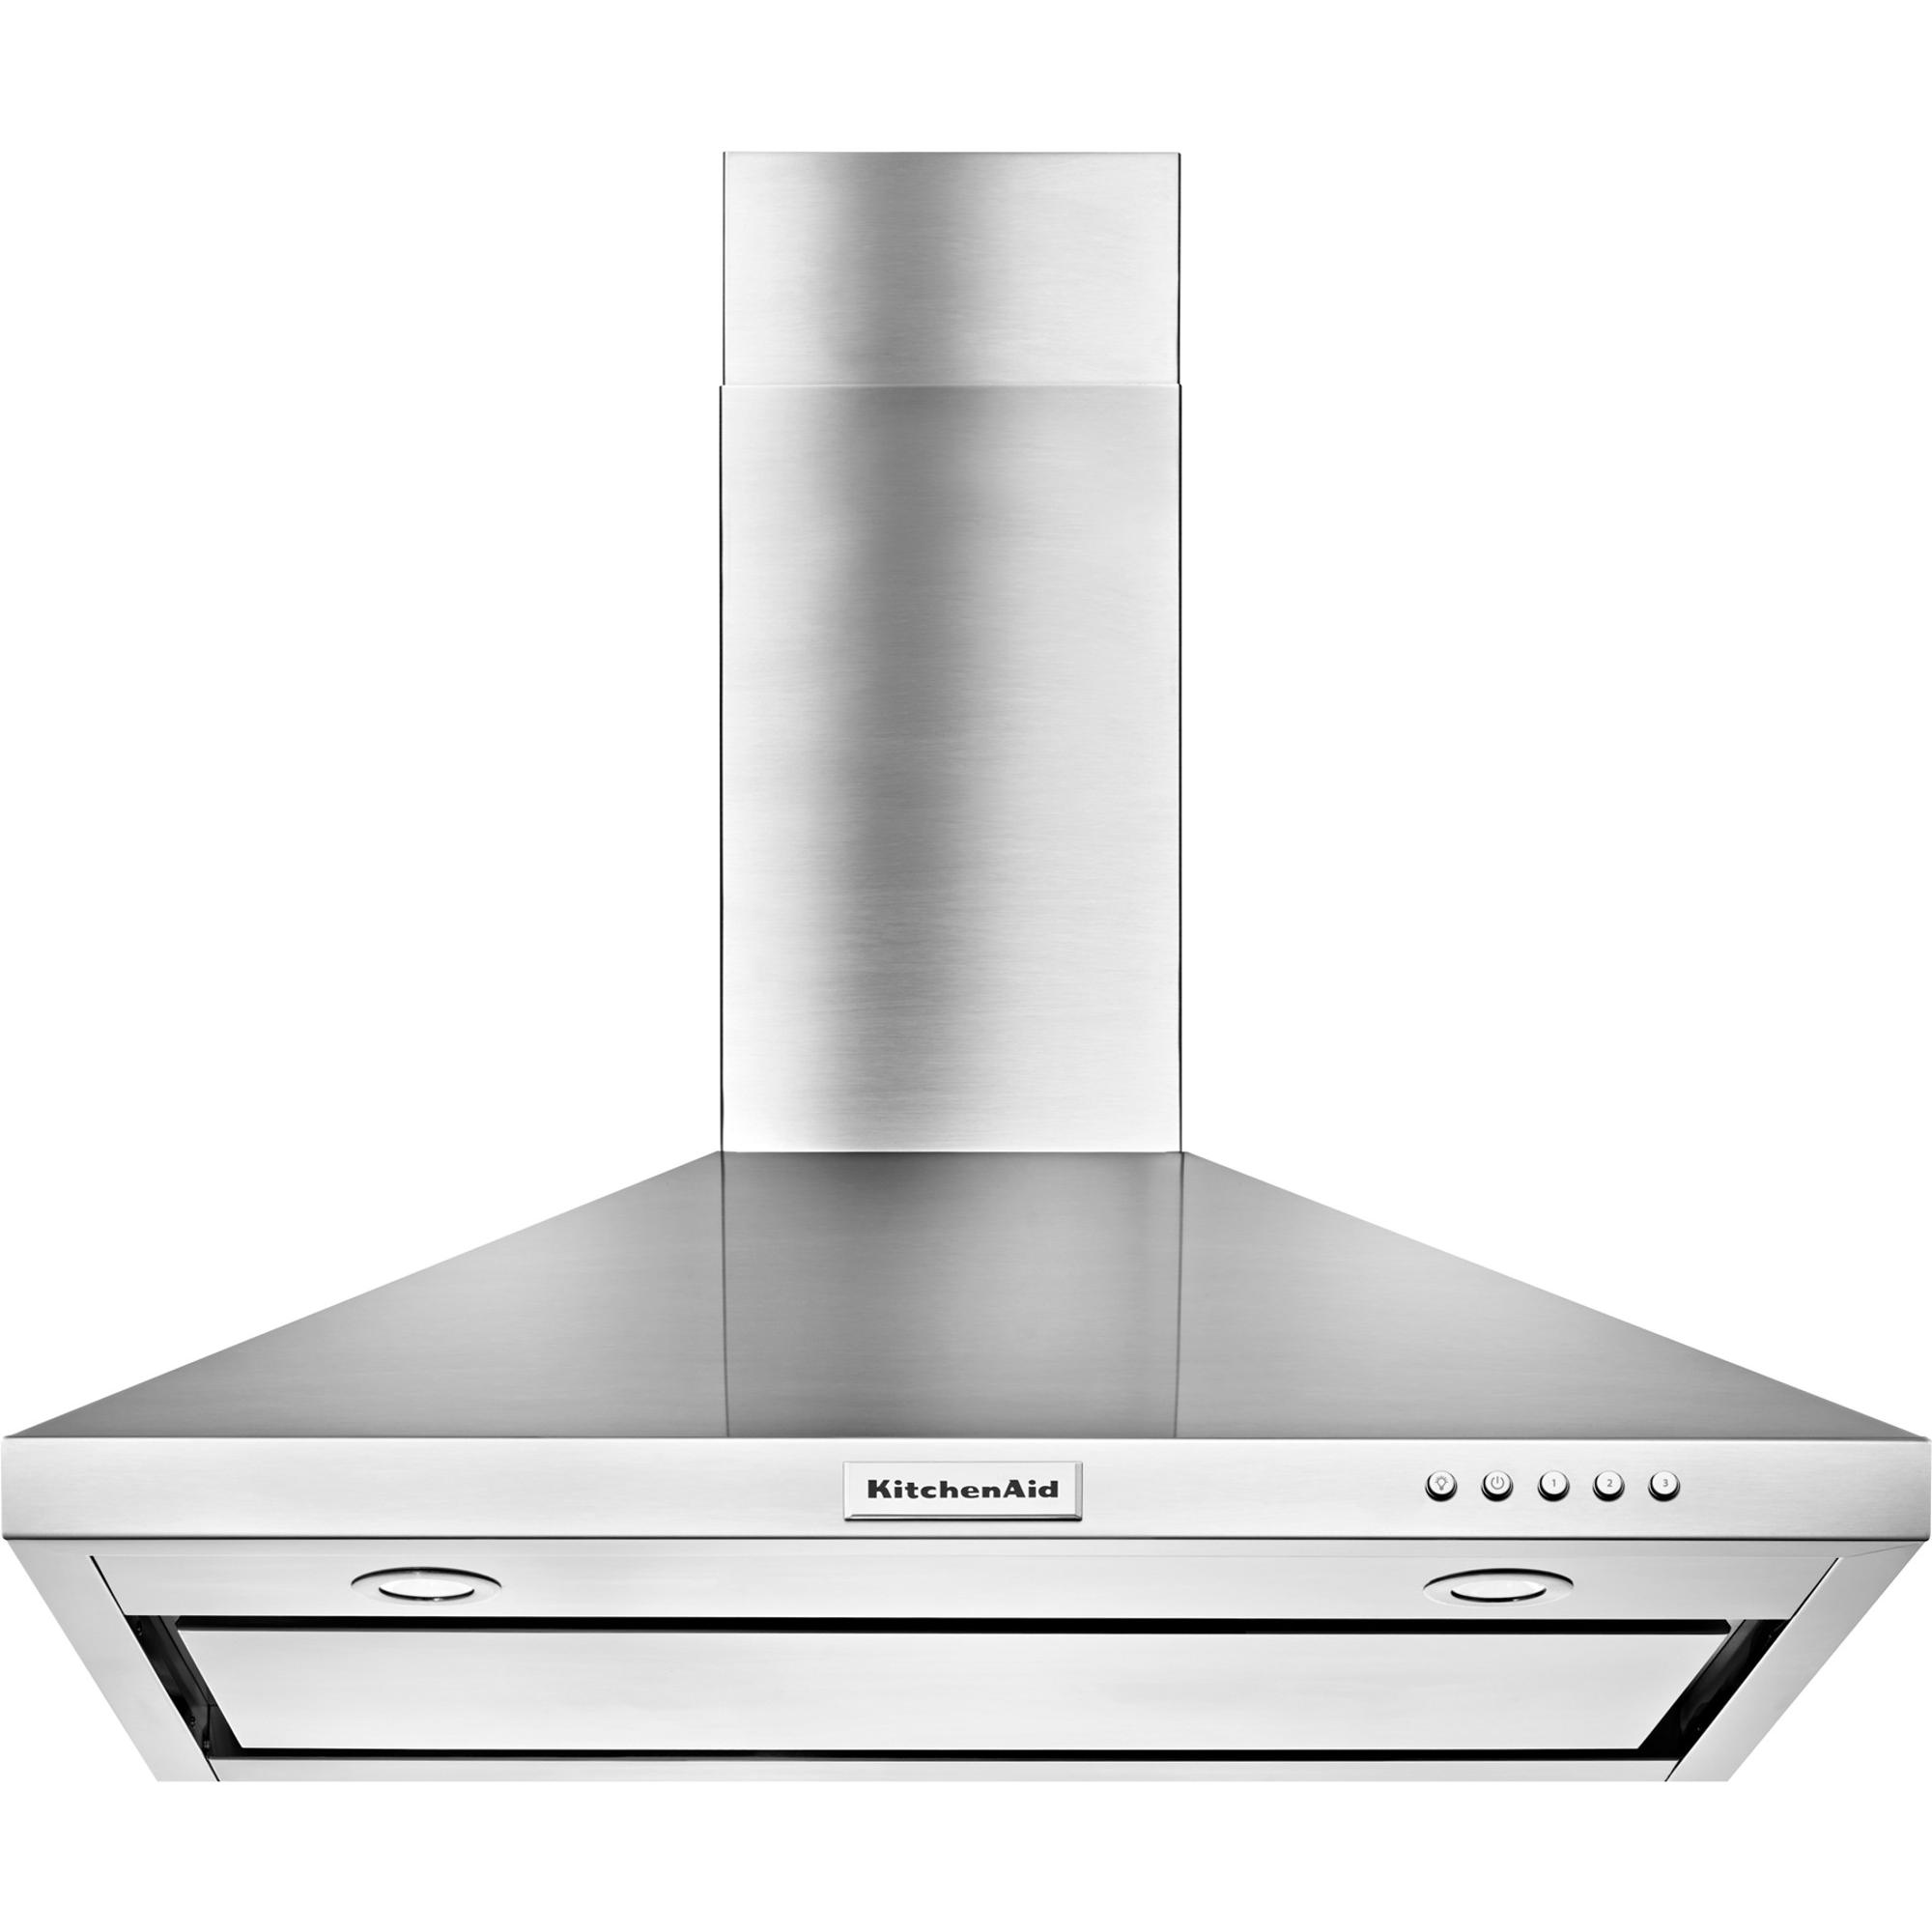 KitchenAid KVWB406DSS 36 Wall-Mount Canopy Range Hood w/ 3 Speeds - Stainless Steel